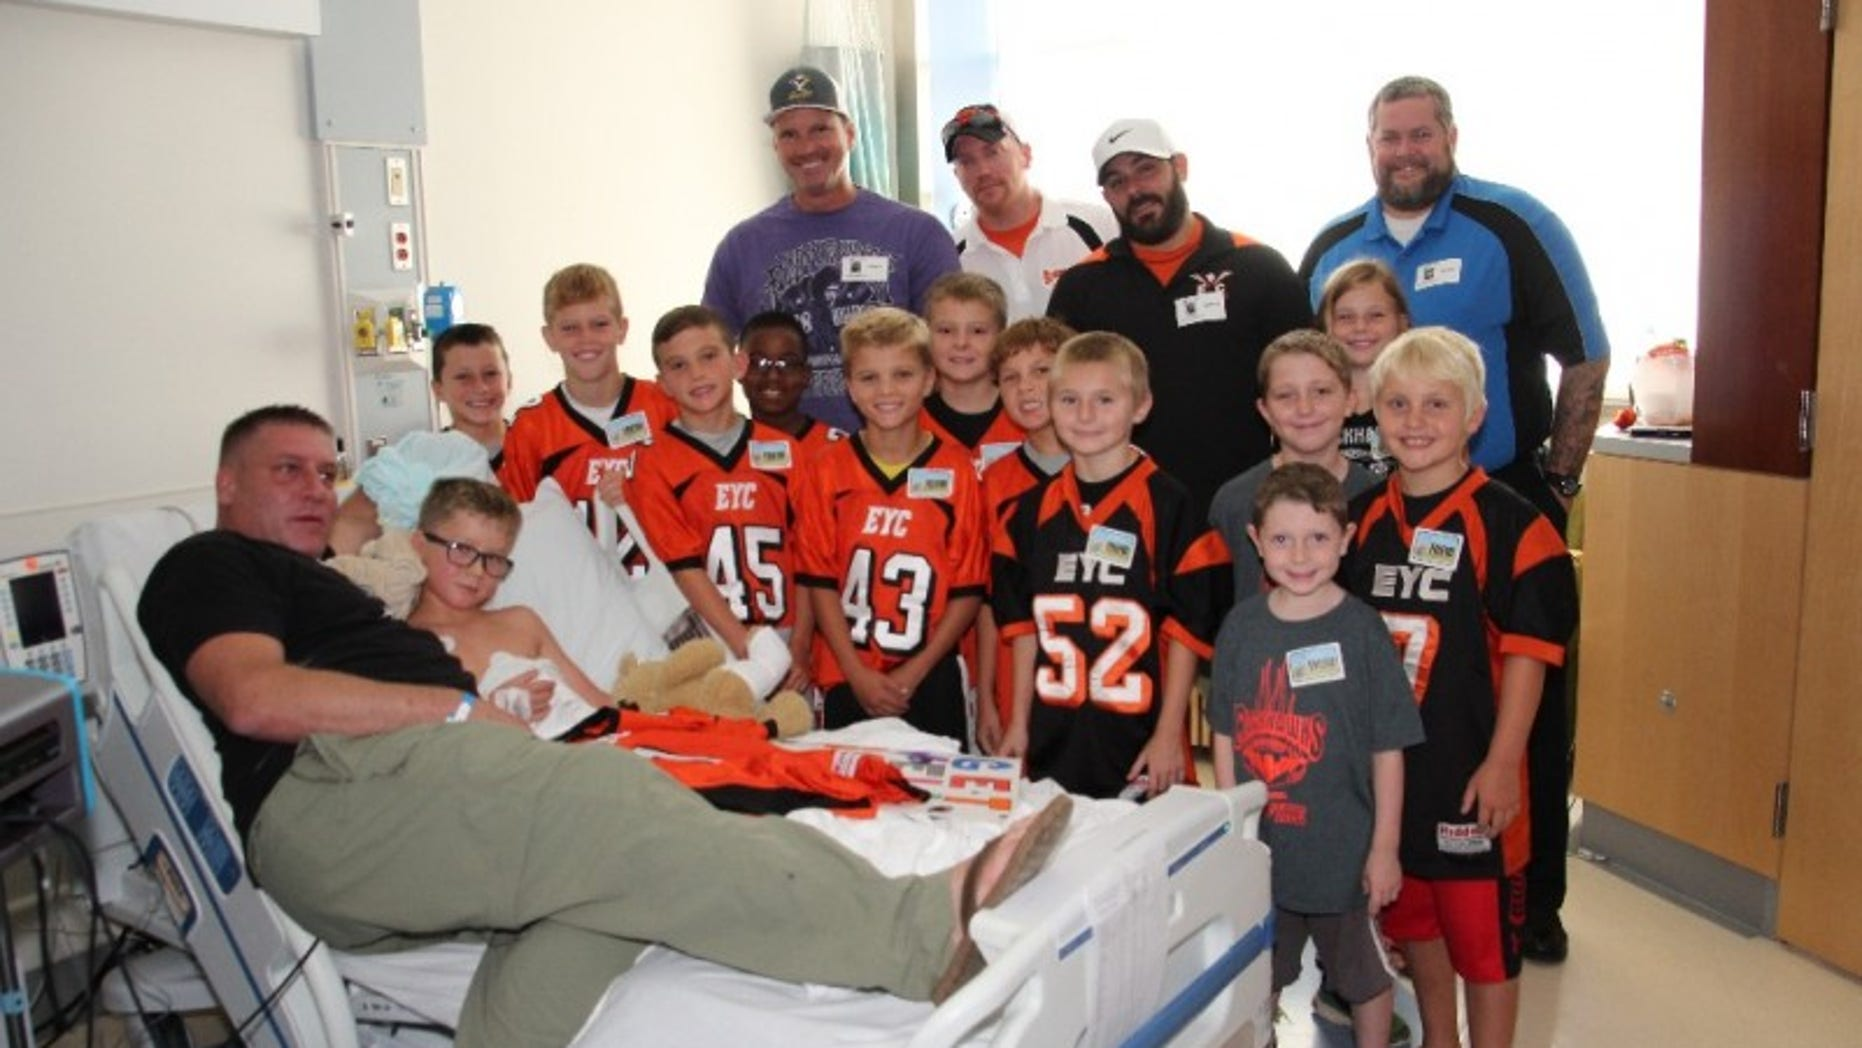 Ayden Zeigler-Kohler was diagnosed with DIPG after collapsing during a football practice.